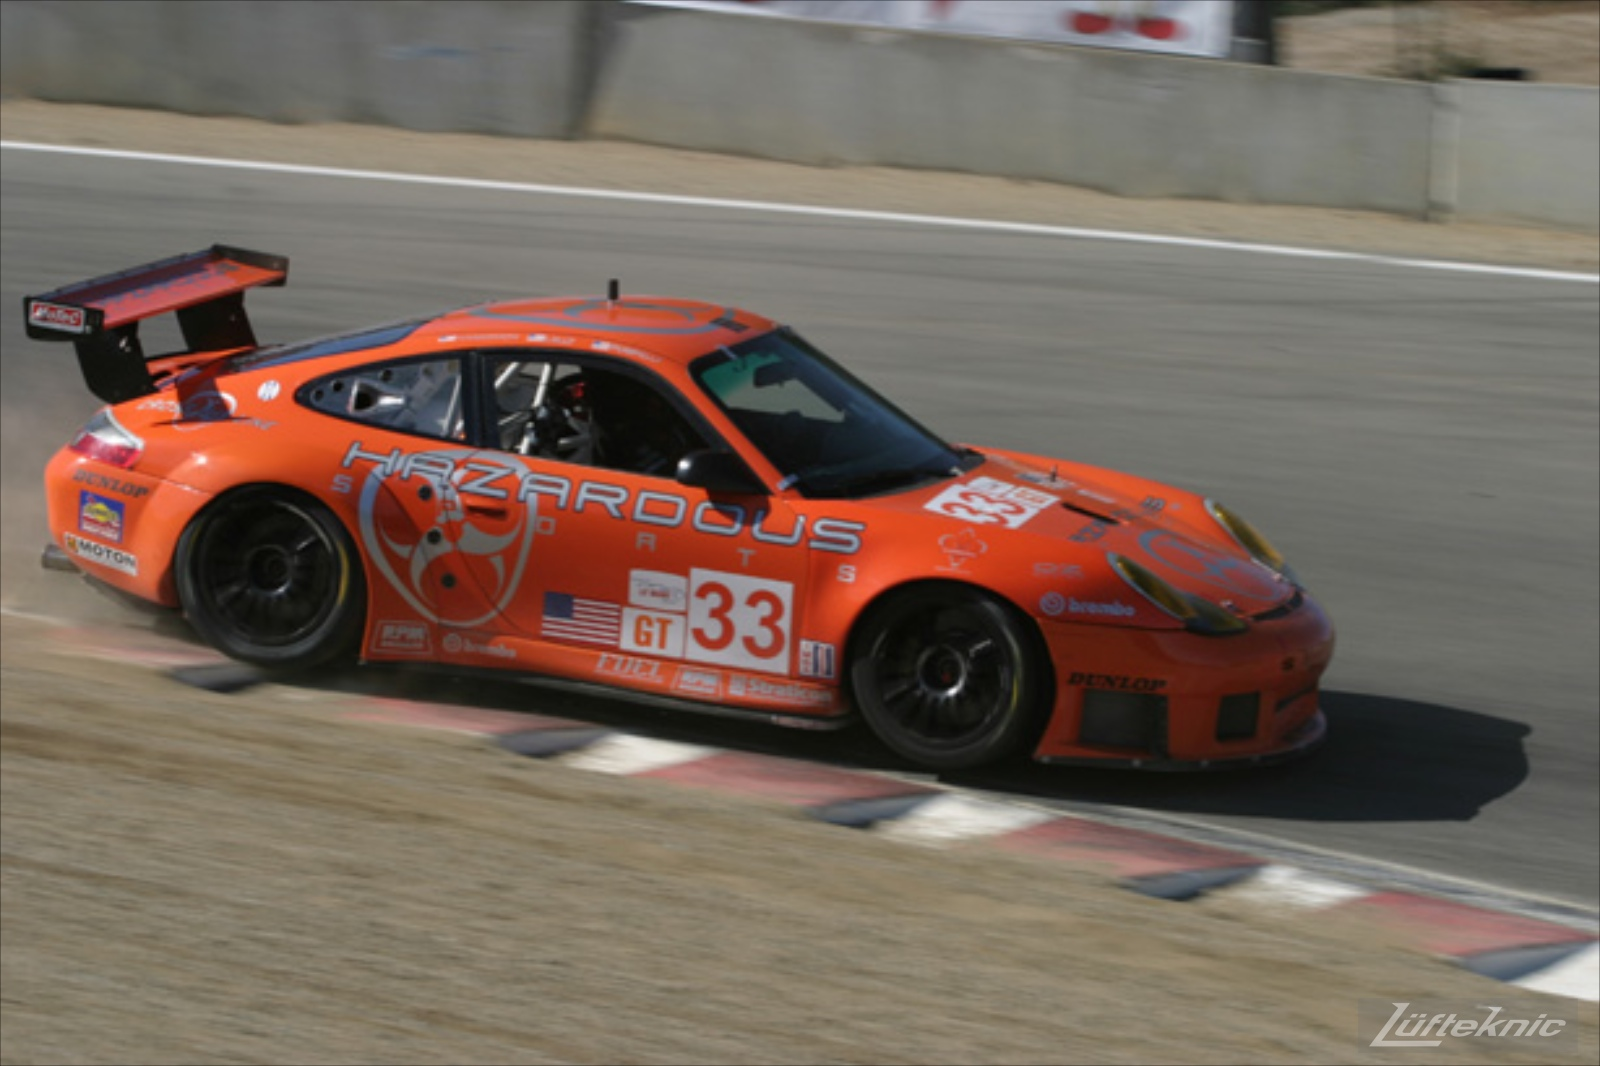 2003 Hazardous Sports Porsche 996 GT3 RS